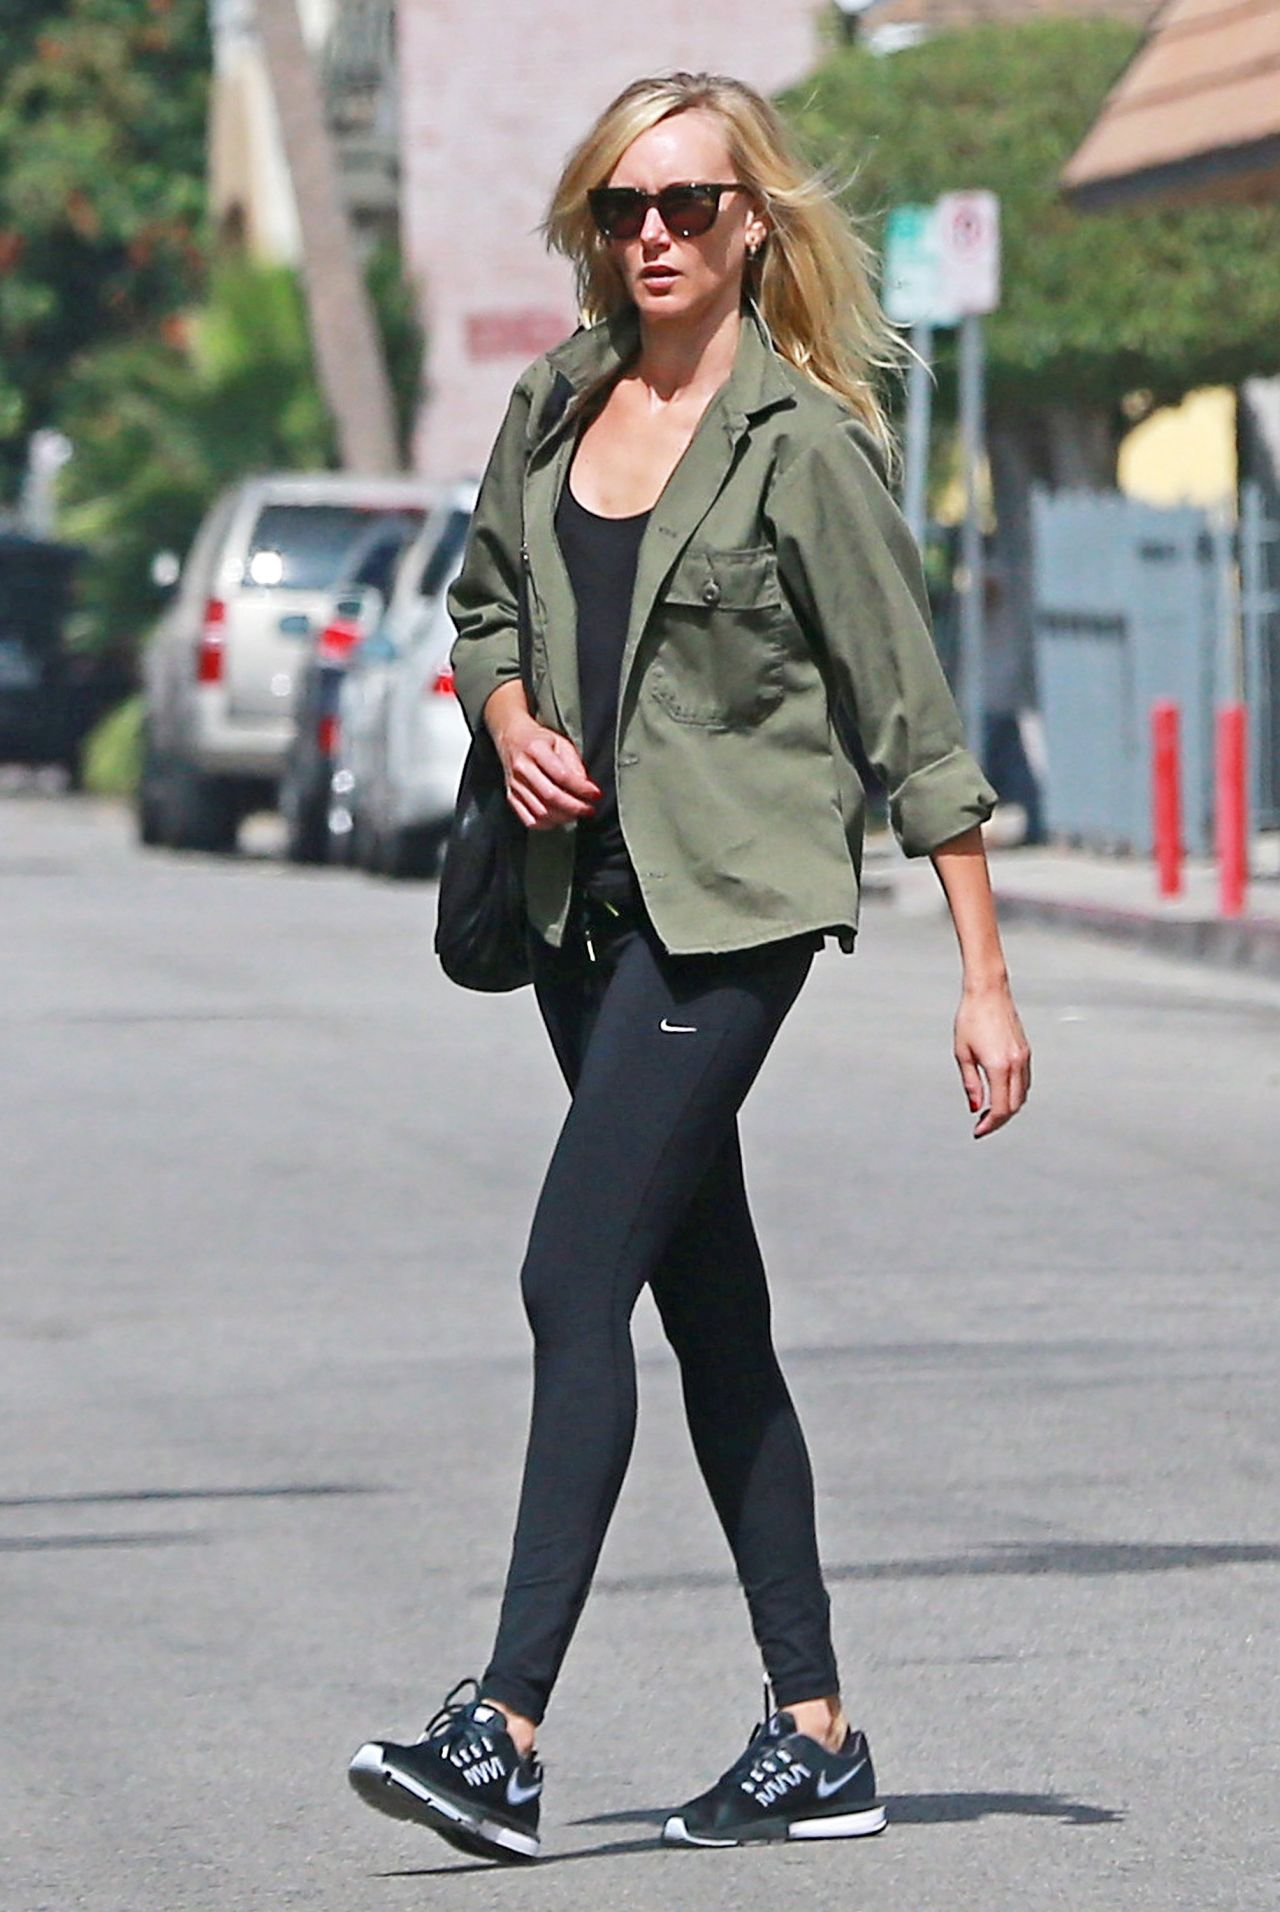 Kimberly Stewart In Spandex Leaving The Gym In Studio